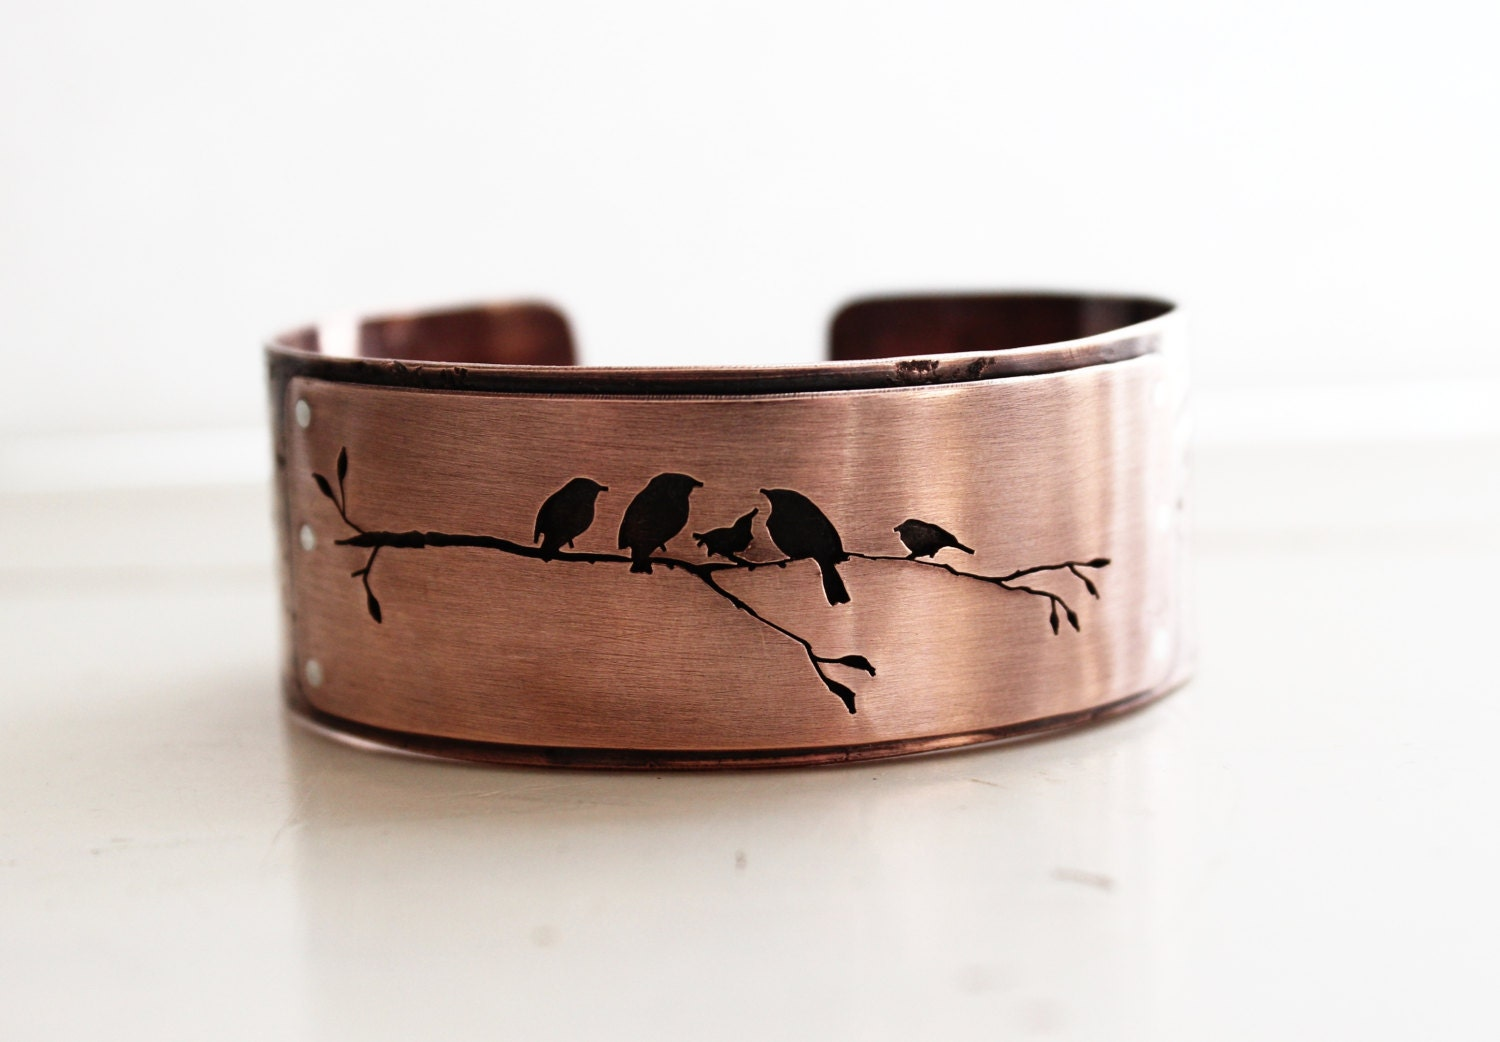 Copper bird cuff bracelet, handmade nature silhouette cuff, hand pierced. - justplainsimple